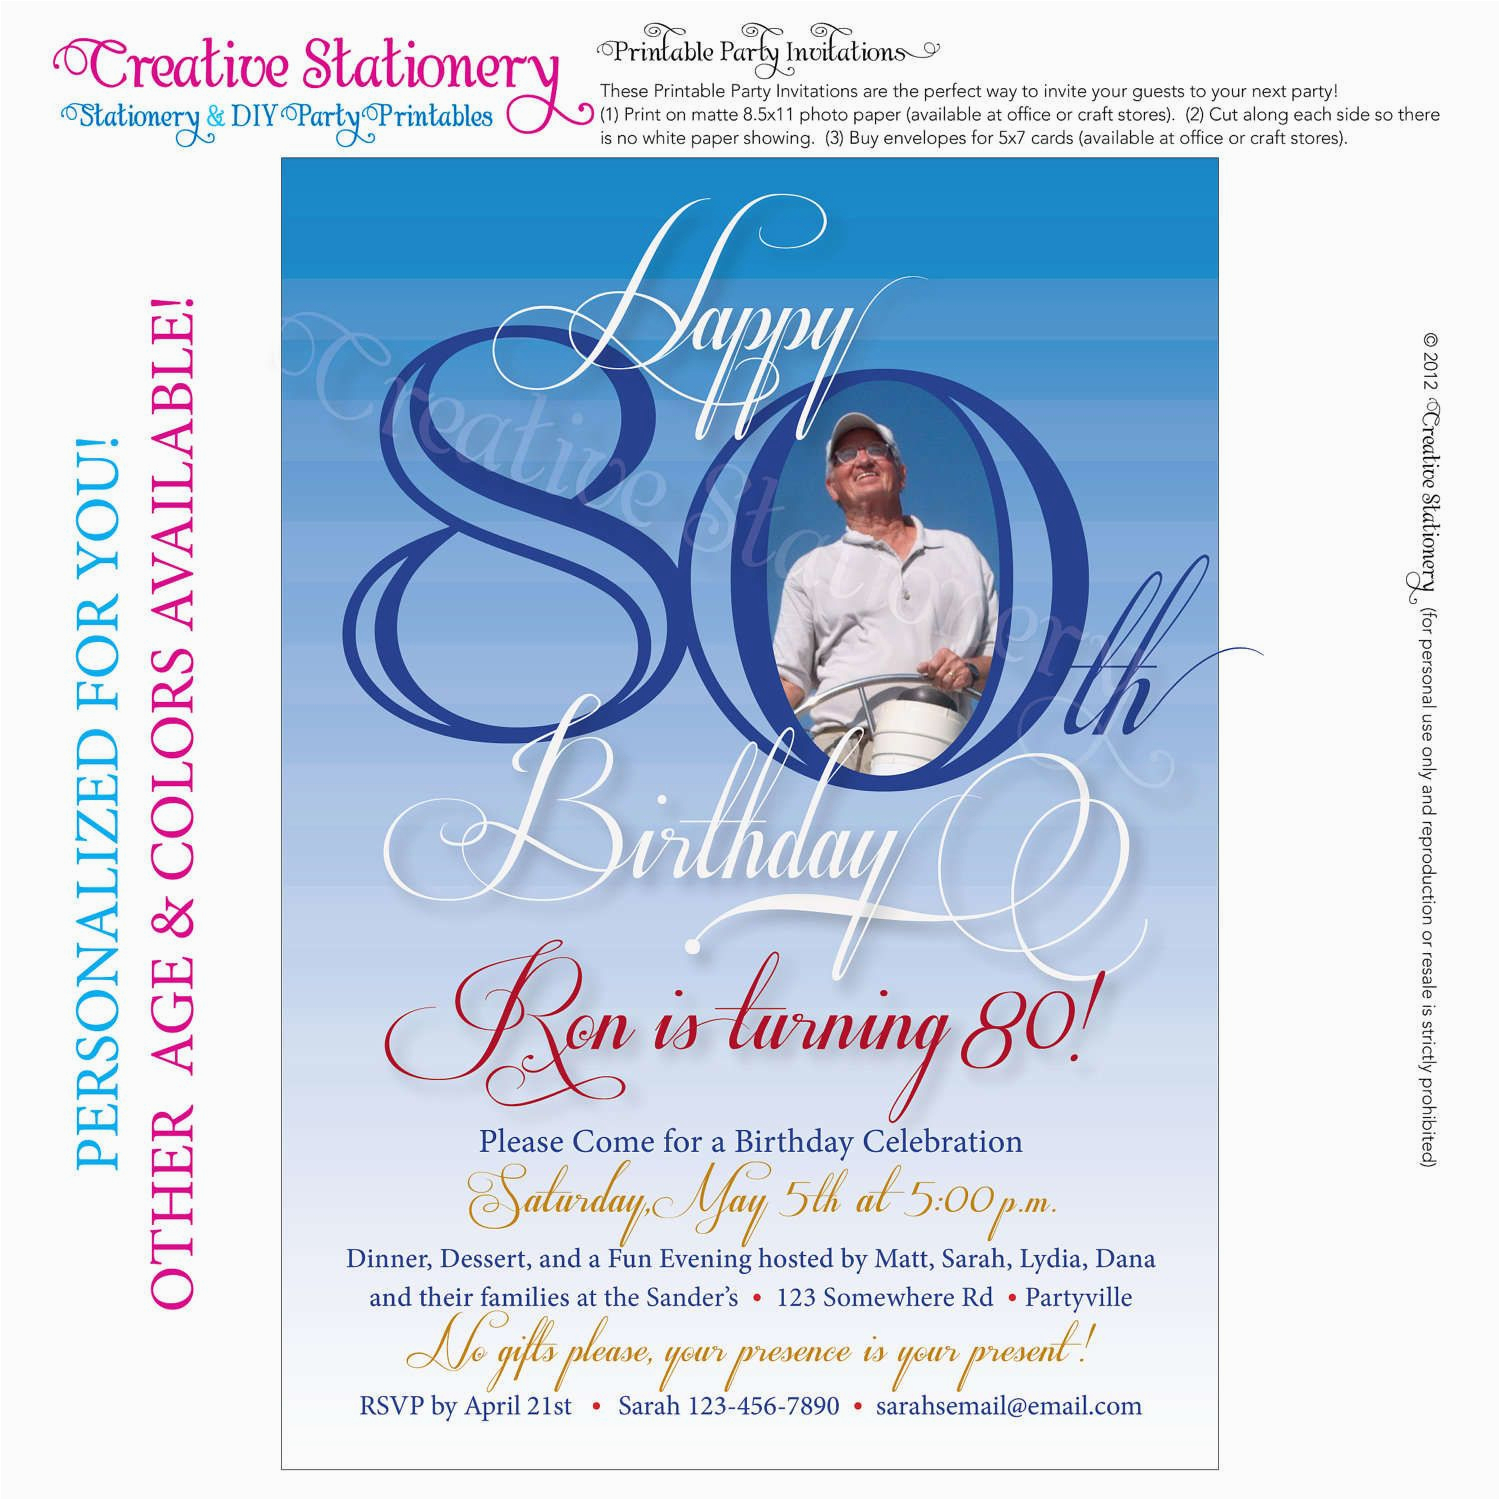 Free Printable Invitations For 80th Birthday Party